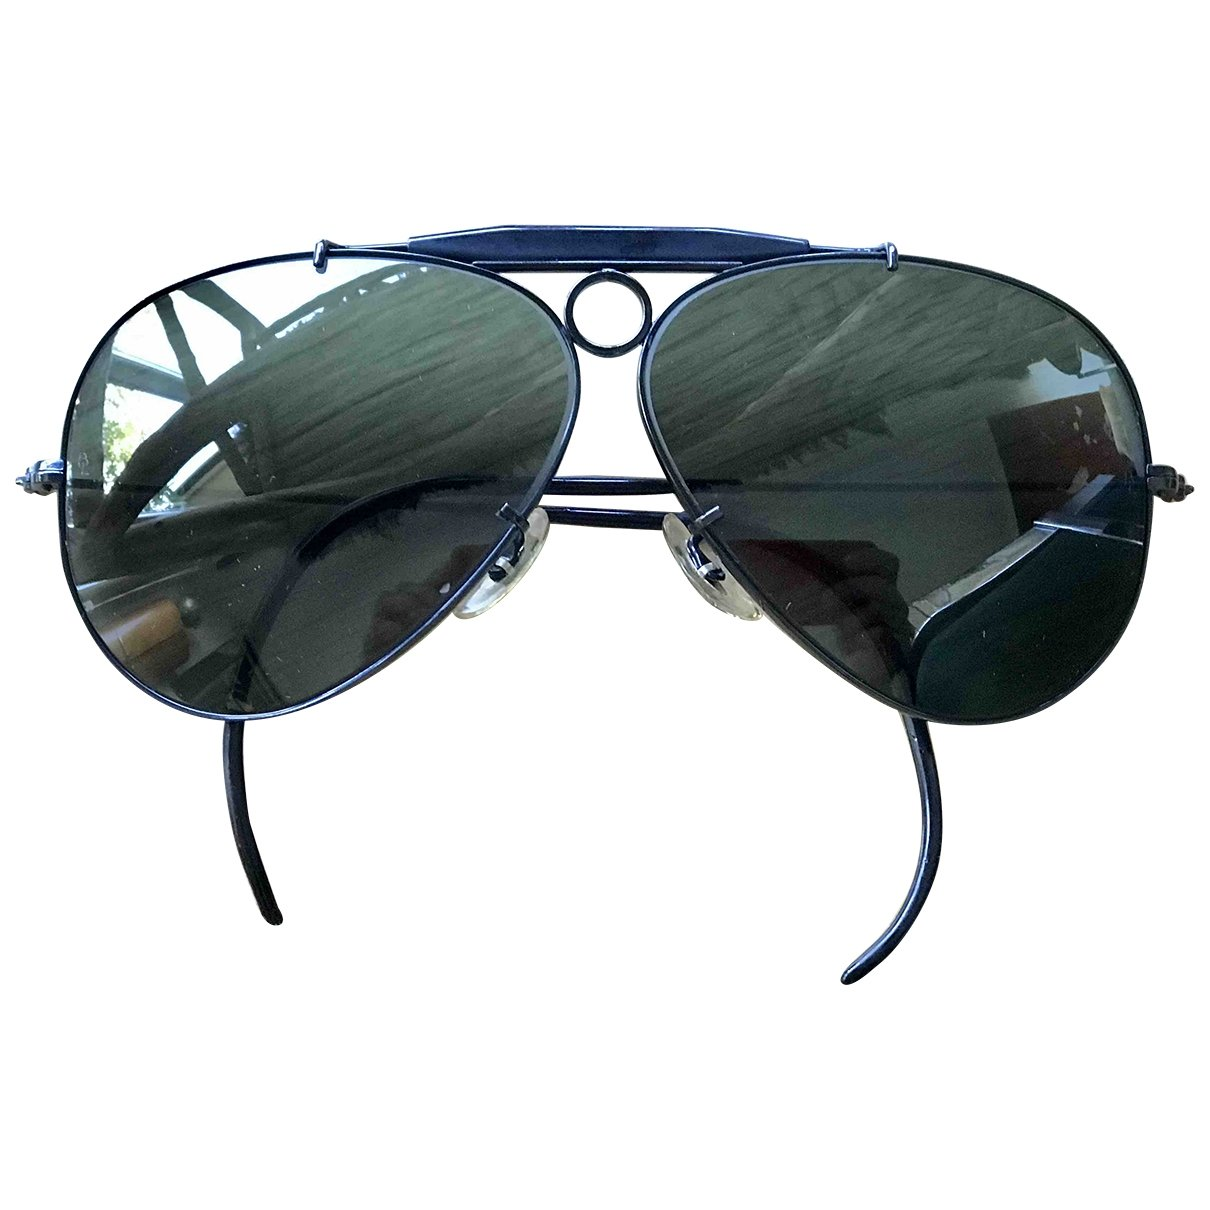 Ray-ban Aviator Black Metal Sunglasses for Men